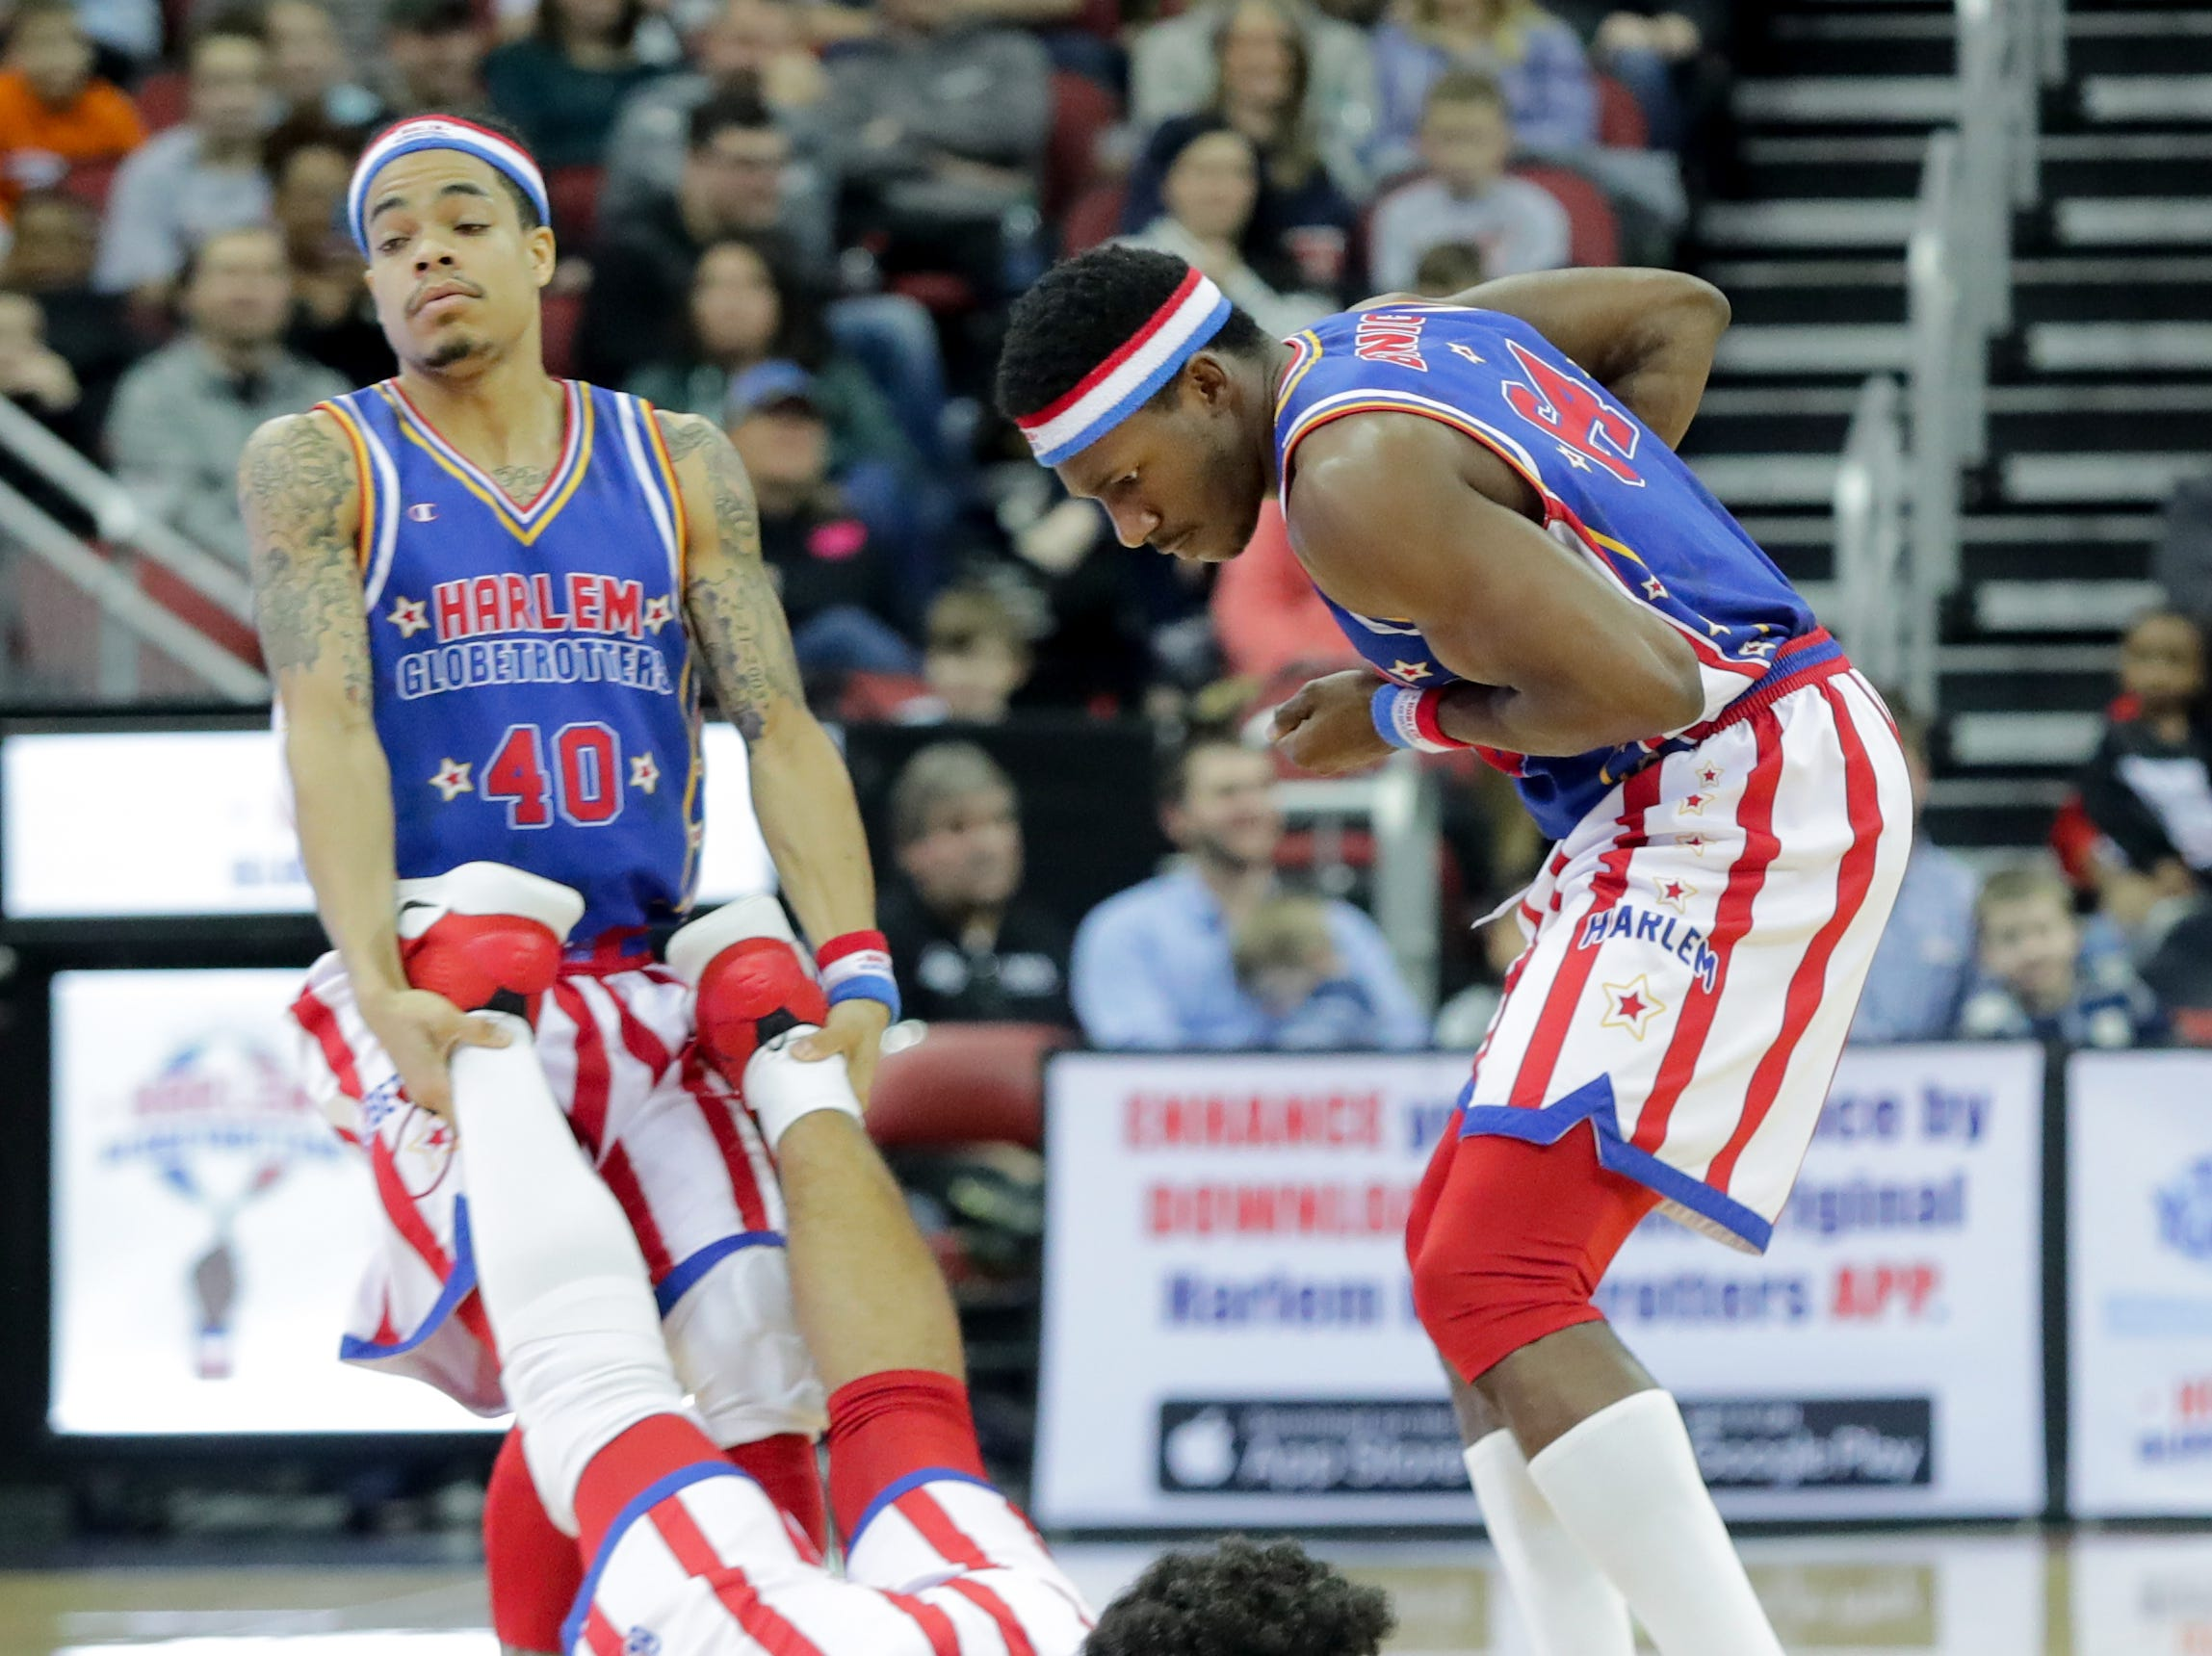 Harlem Globetrotters' Sweet Lou II is brought back to the bench. Jan. 19, 2019